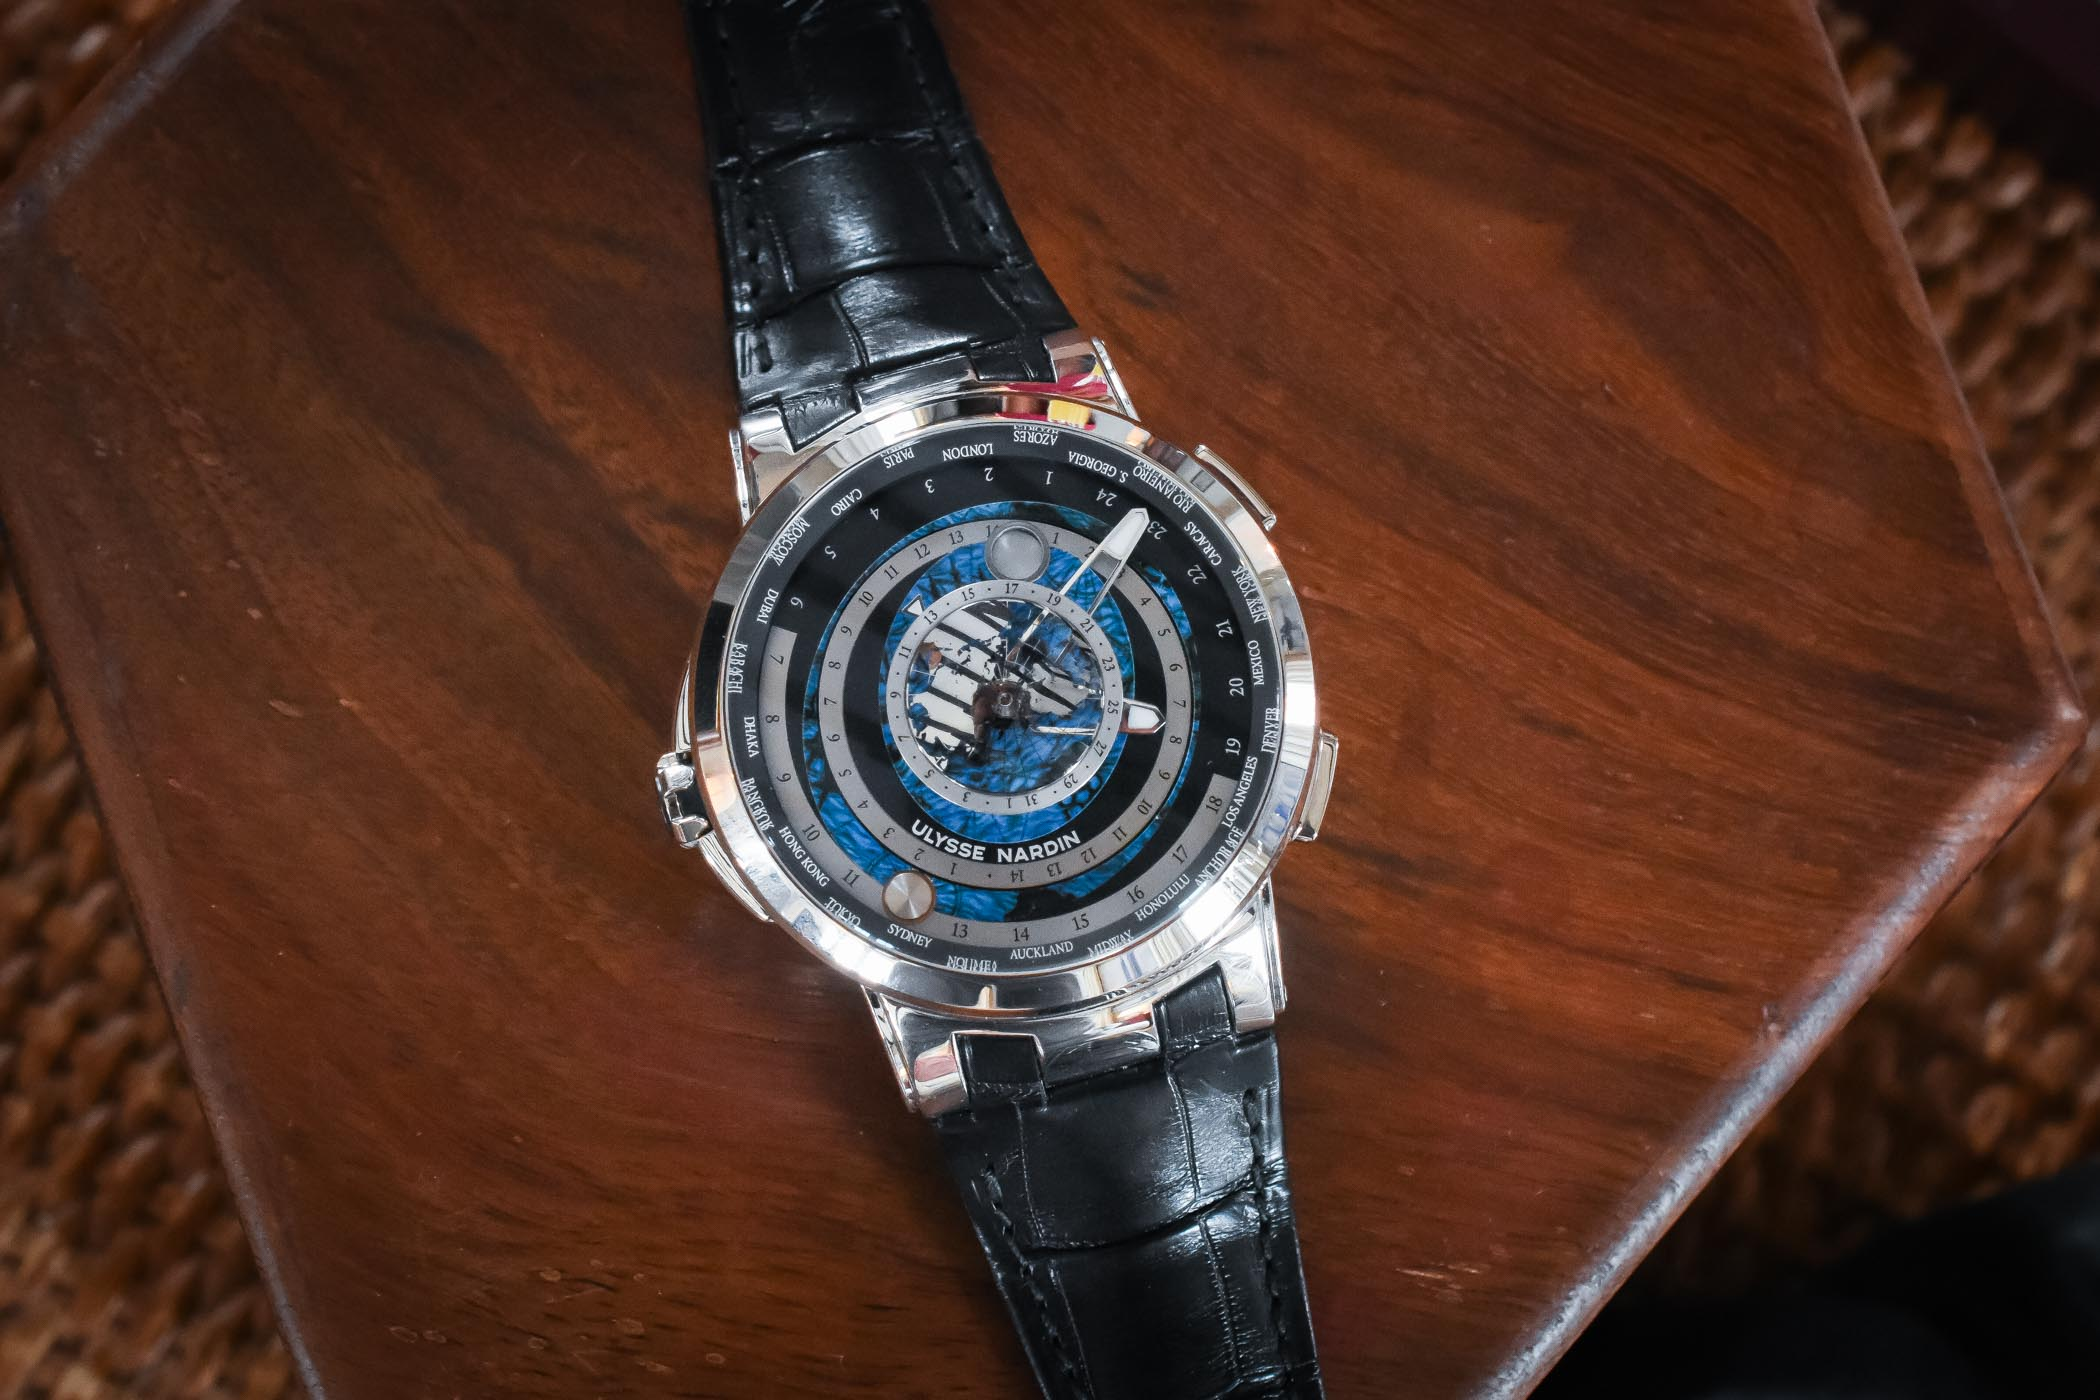 moonstruck watches nardin specs ulysse worldtimer monochrome executive price astronomical watch